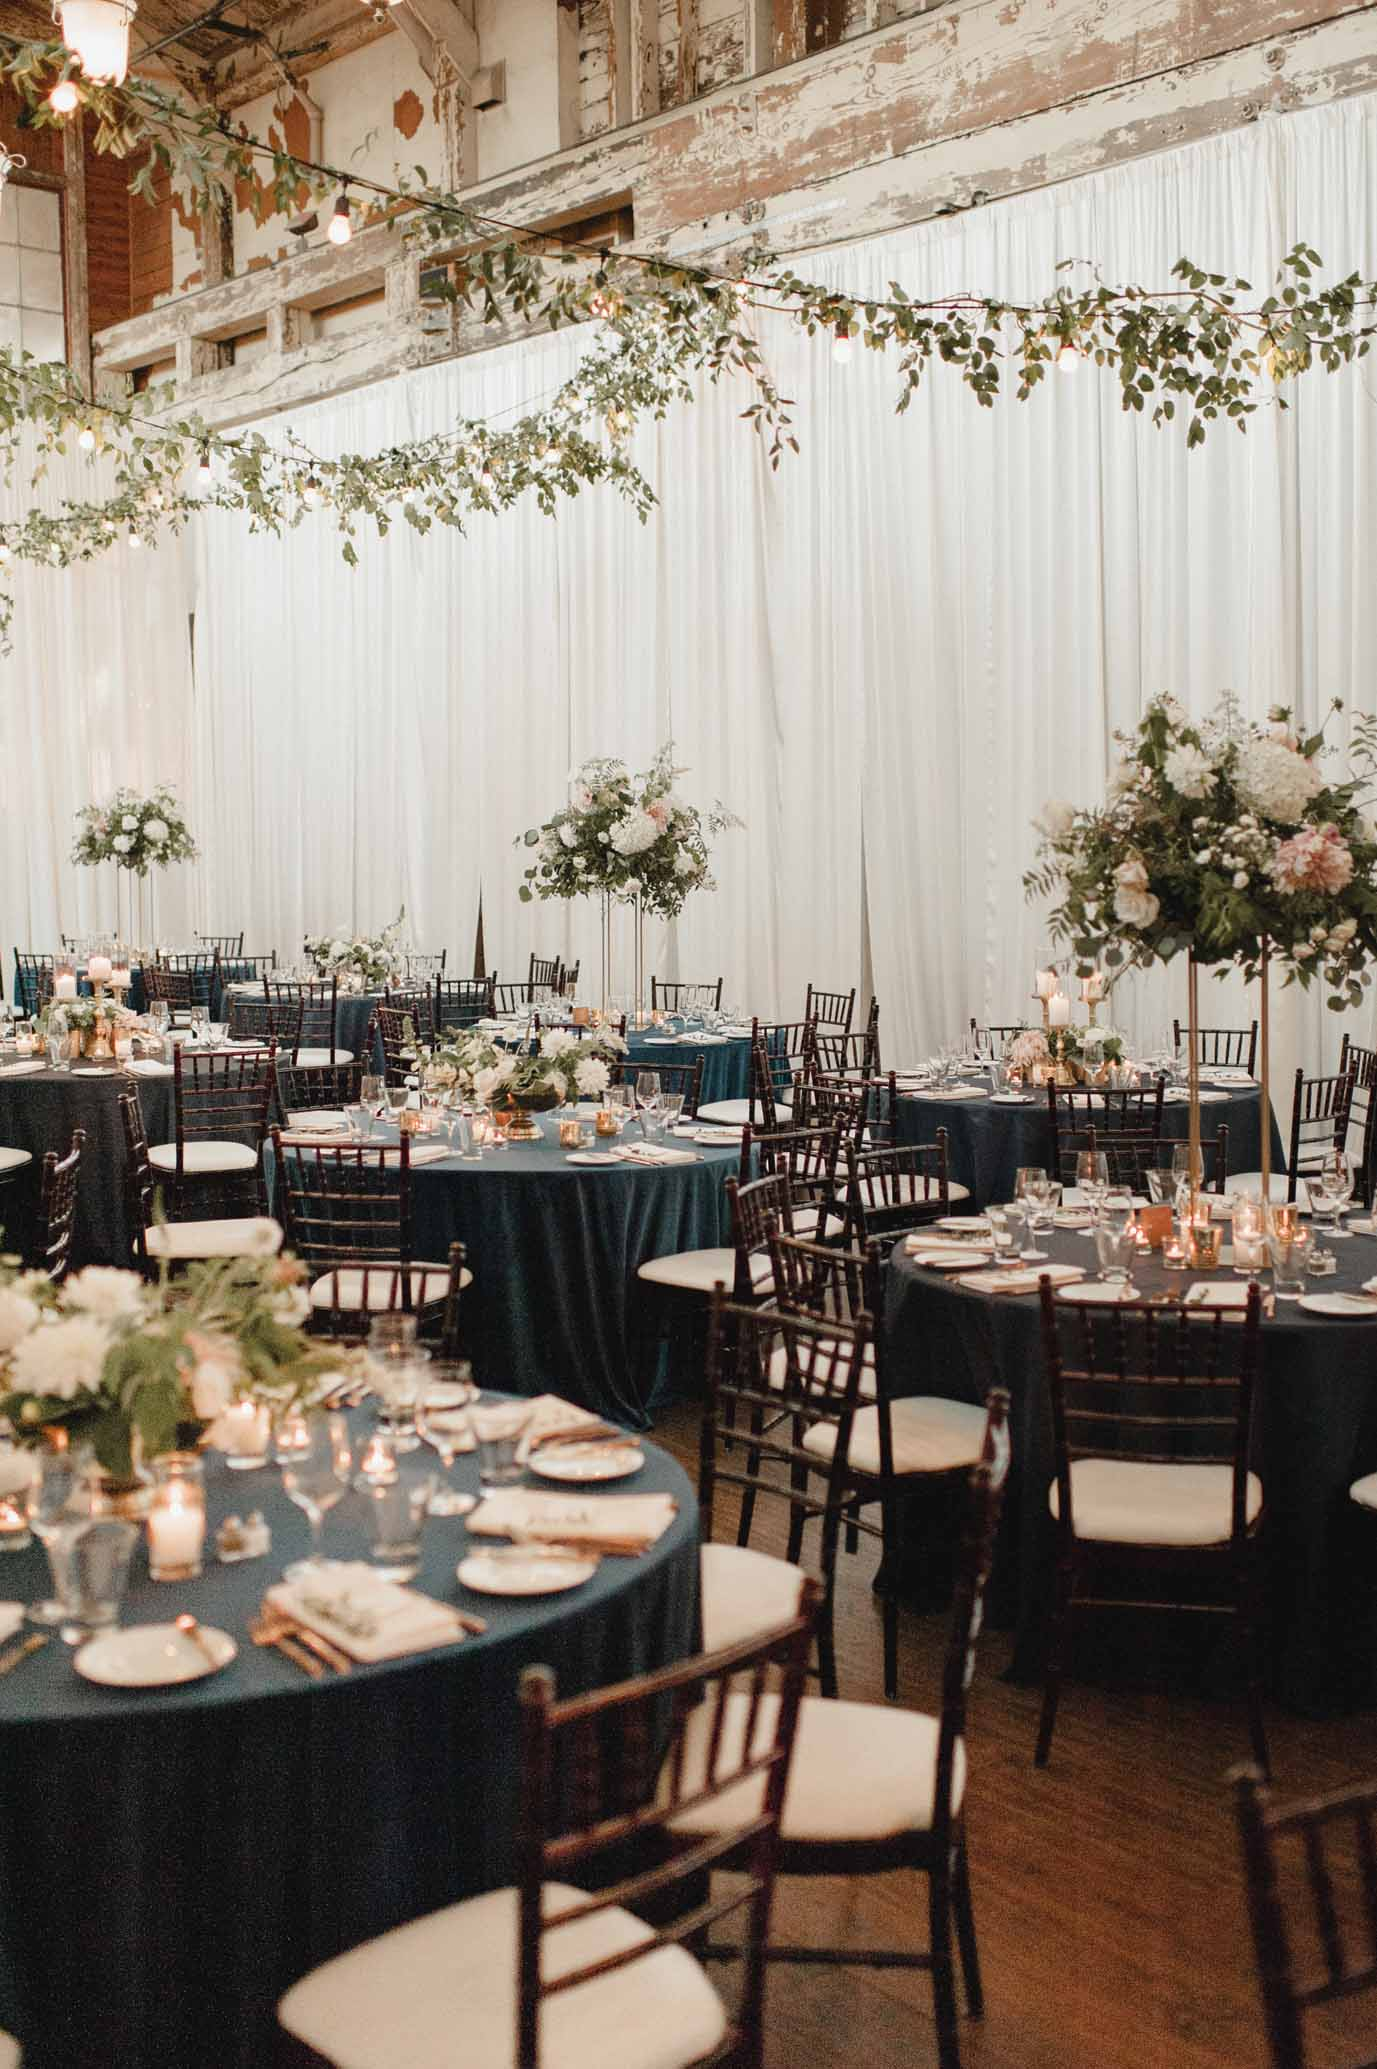 Wedding reception tables with blue linens, and greenery centerpieces - by Flora Nova Design Seattle